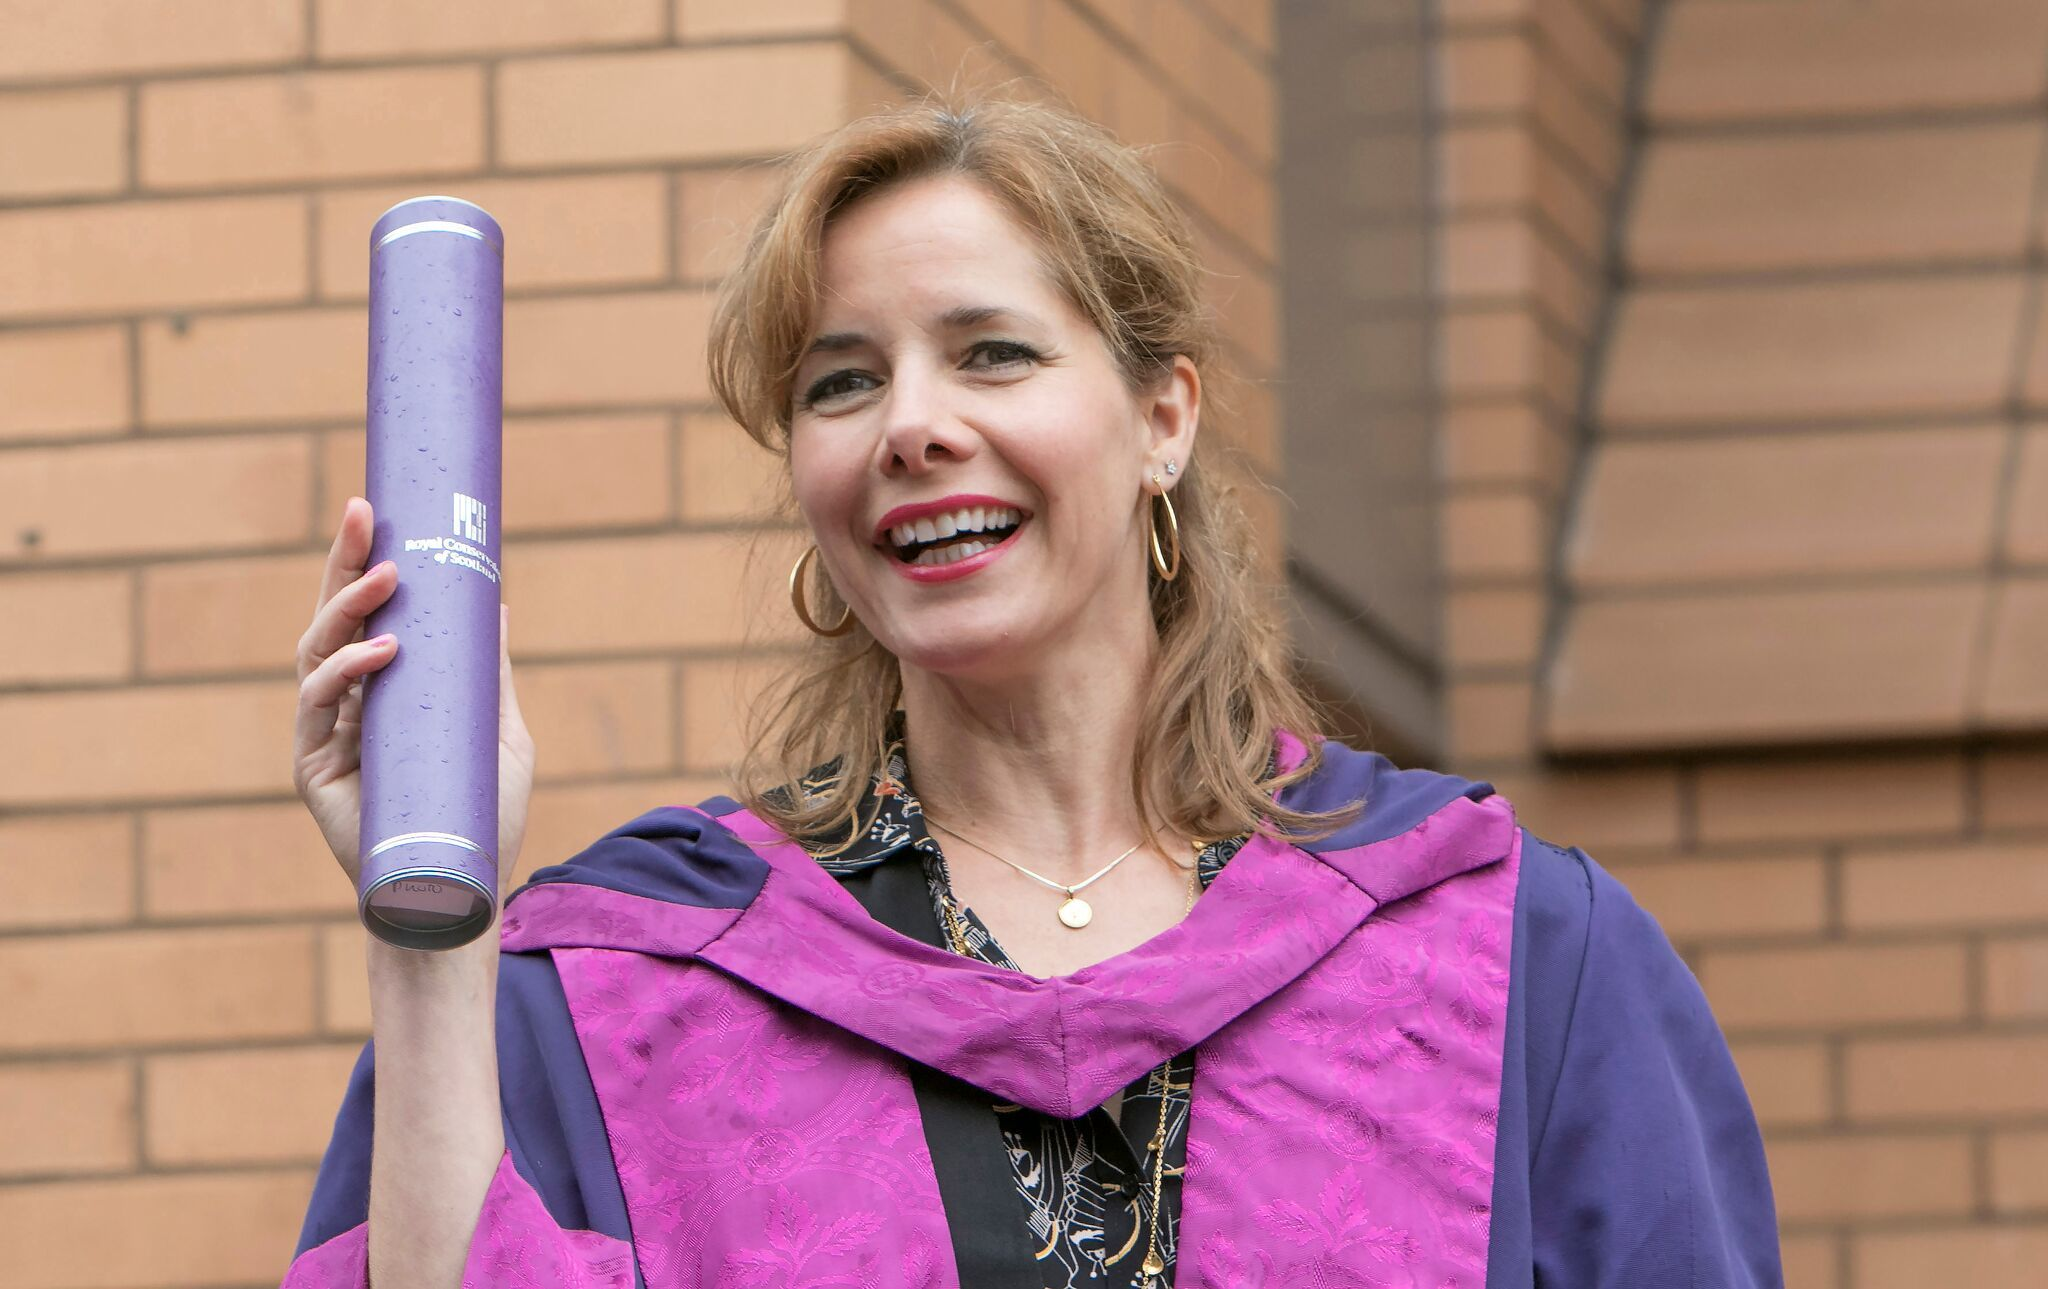 Darcey Bussell picks up her degree (Royal Conservatoire of Scotland)